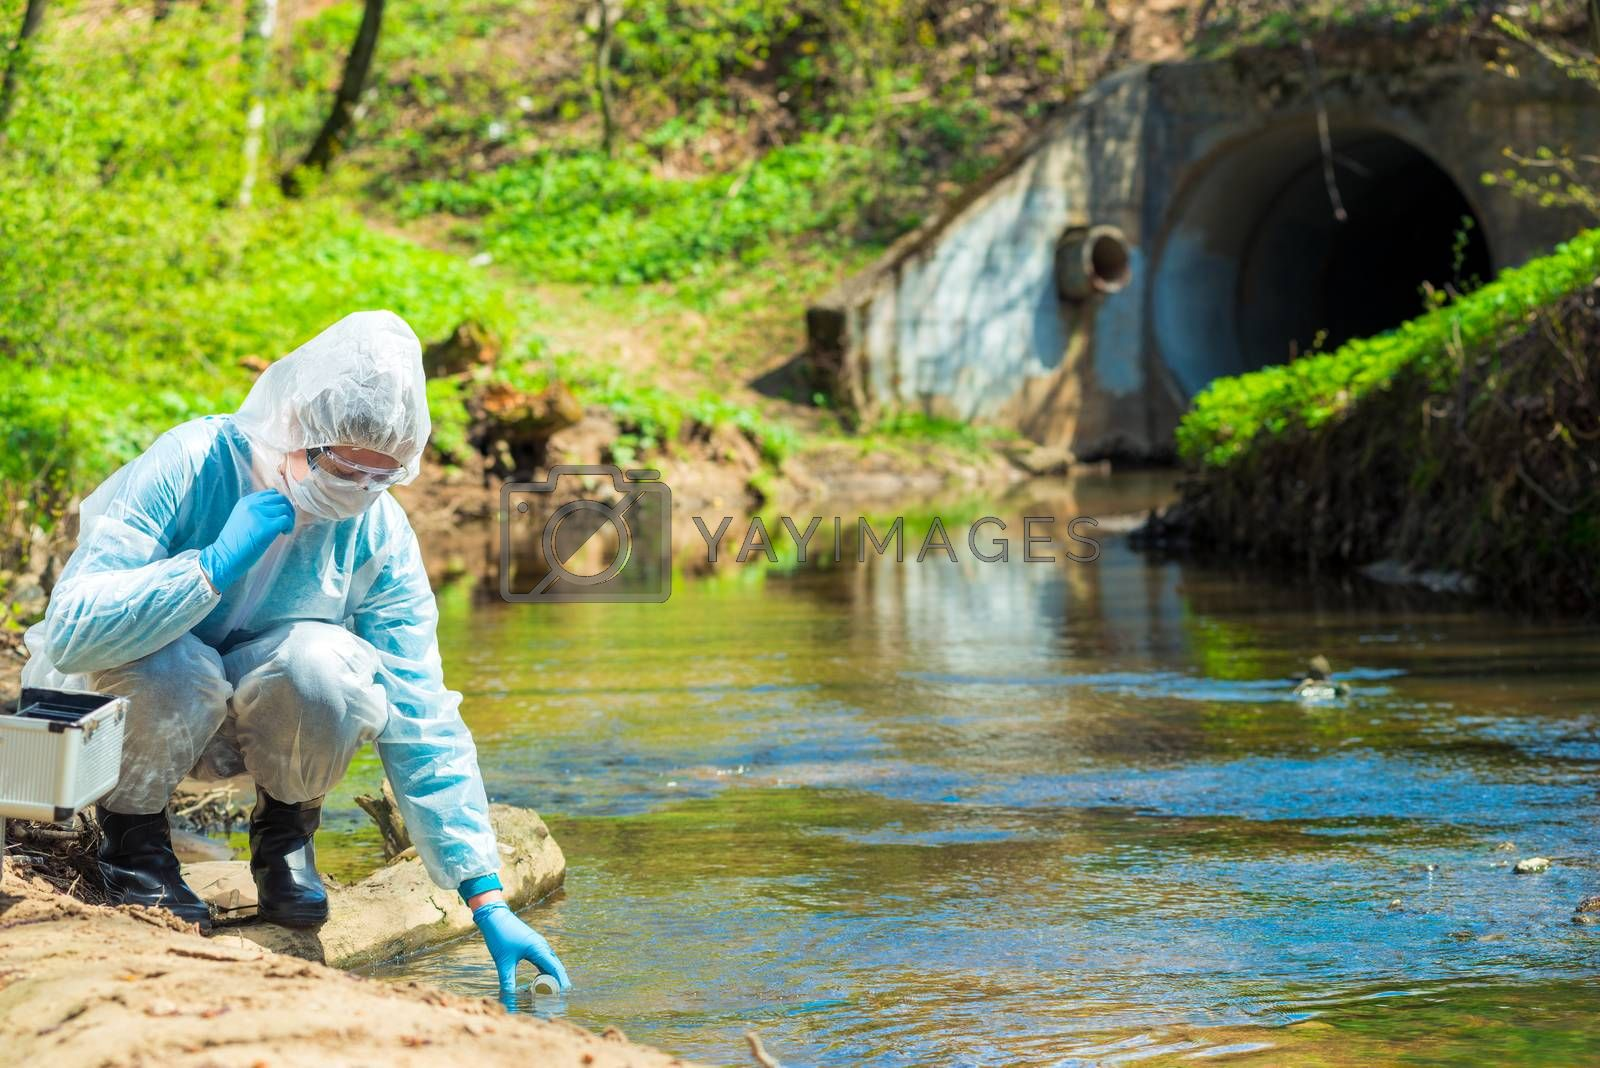 Scientist in protective suite taking water samples from the river